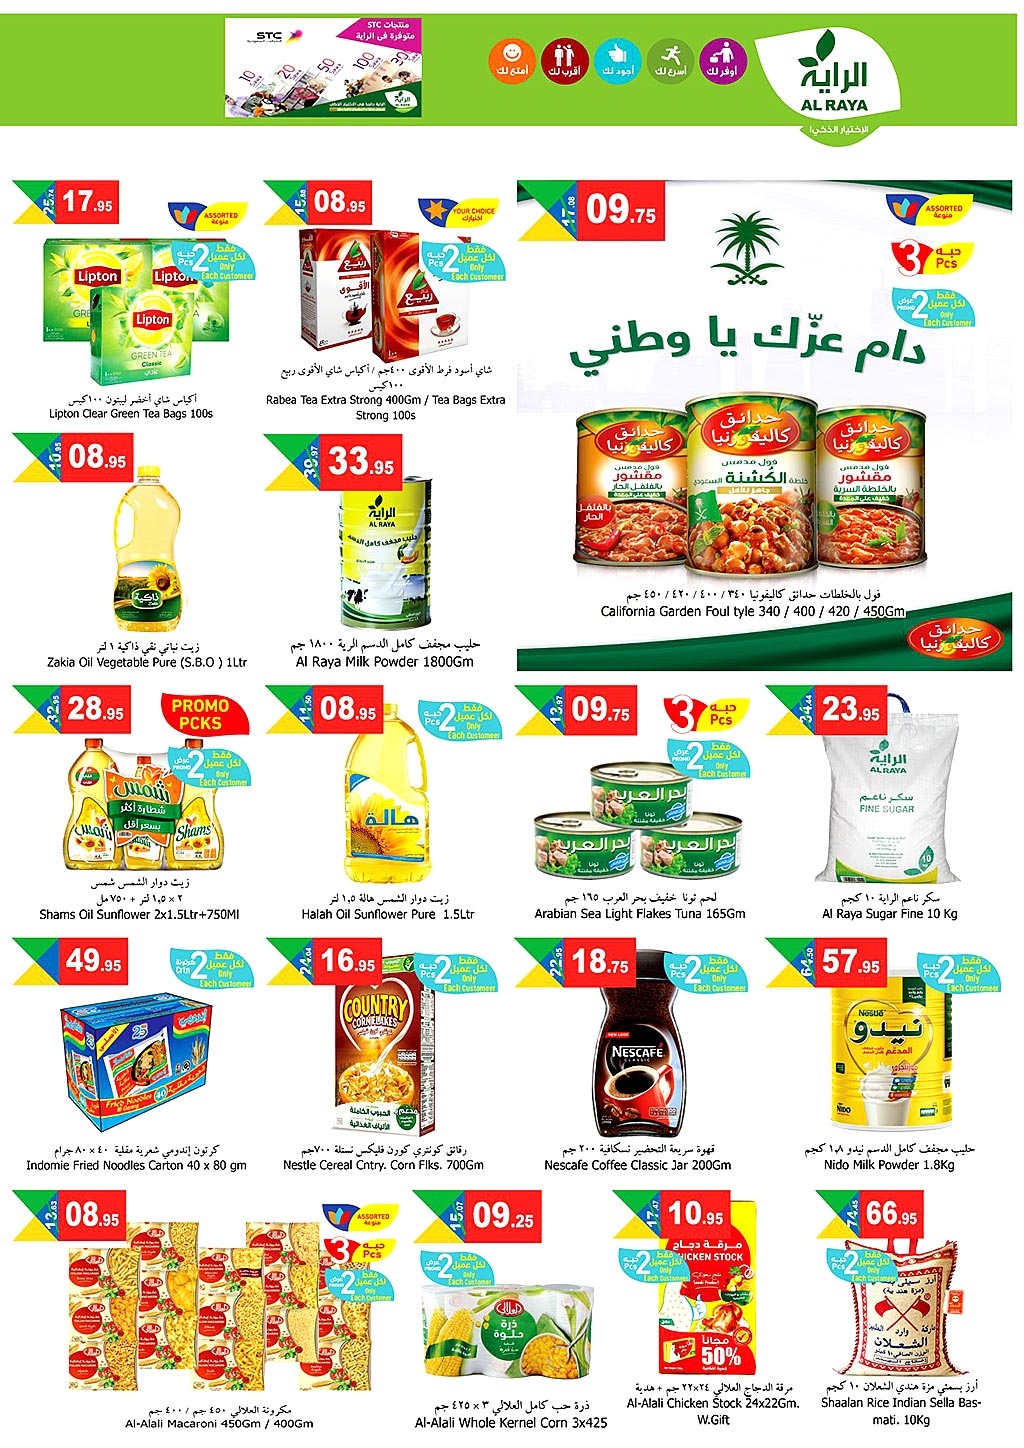 al-raya offers from 23sep to 29sep 2020 page number 2 عروض الراية من 23 سبتمبر حتى 29 سبتمبر 2020 صفحة رقم 2